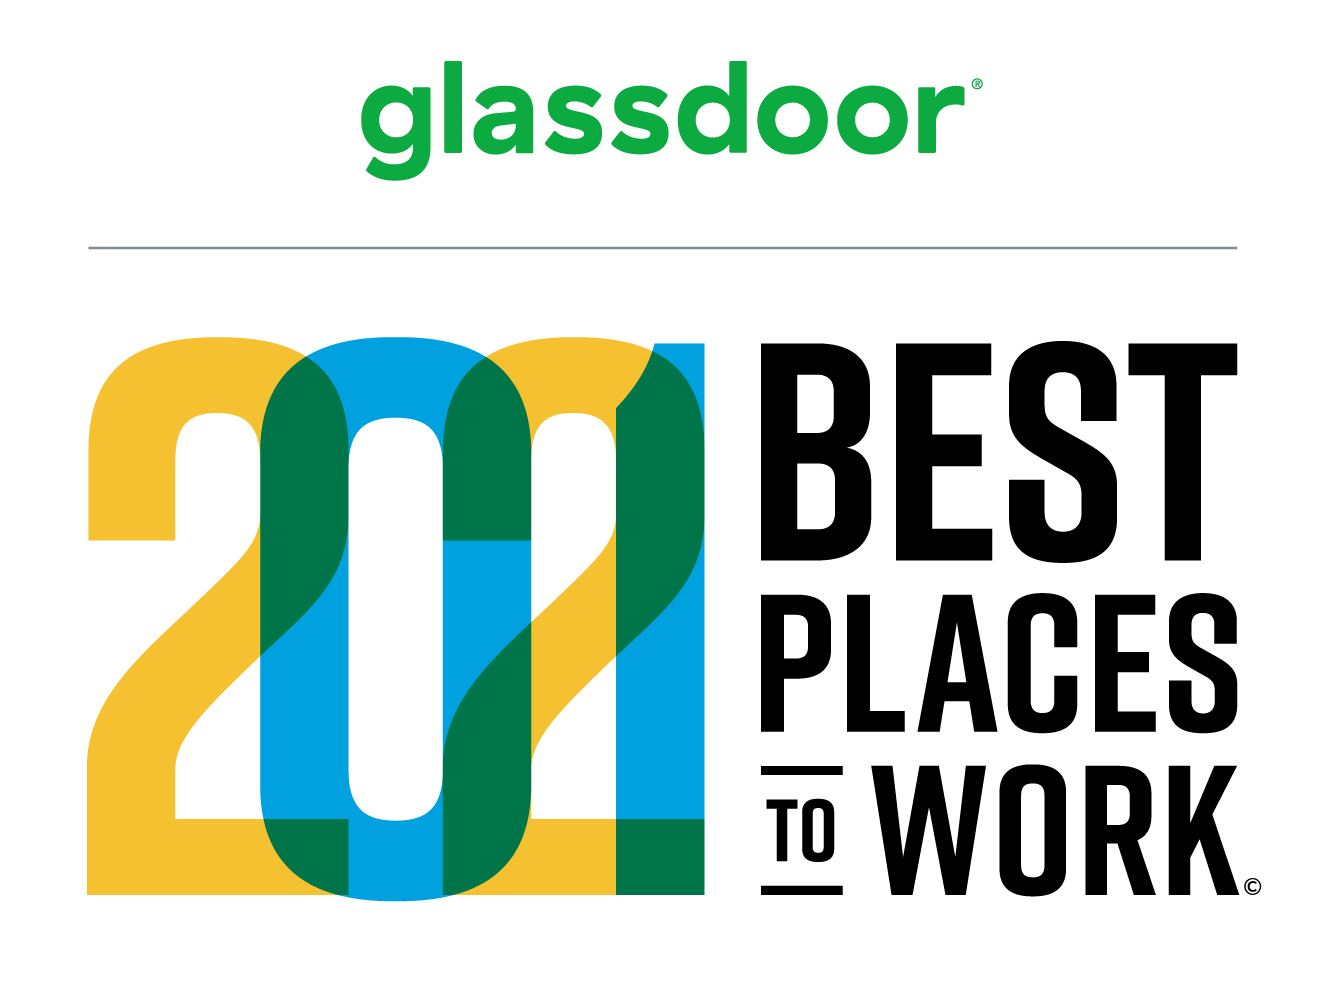 glassdooraward Logo